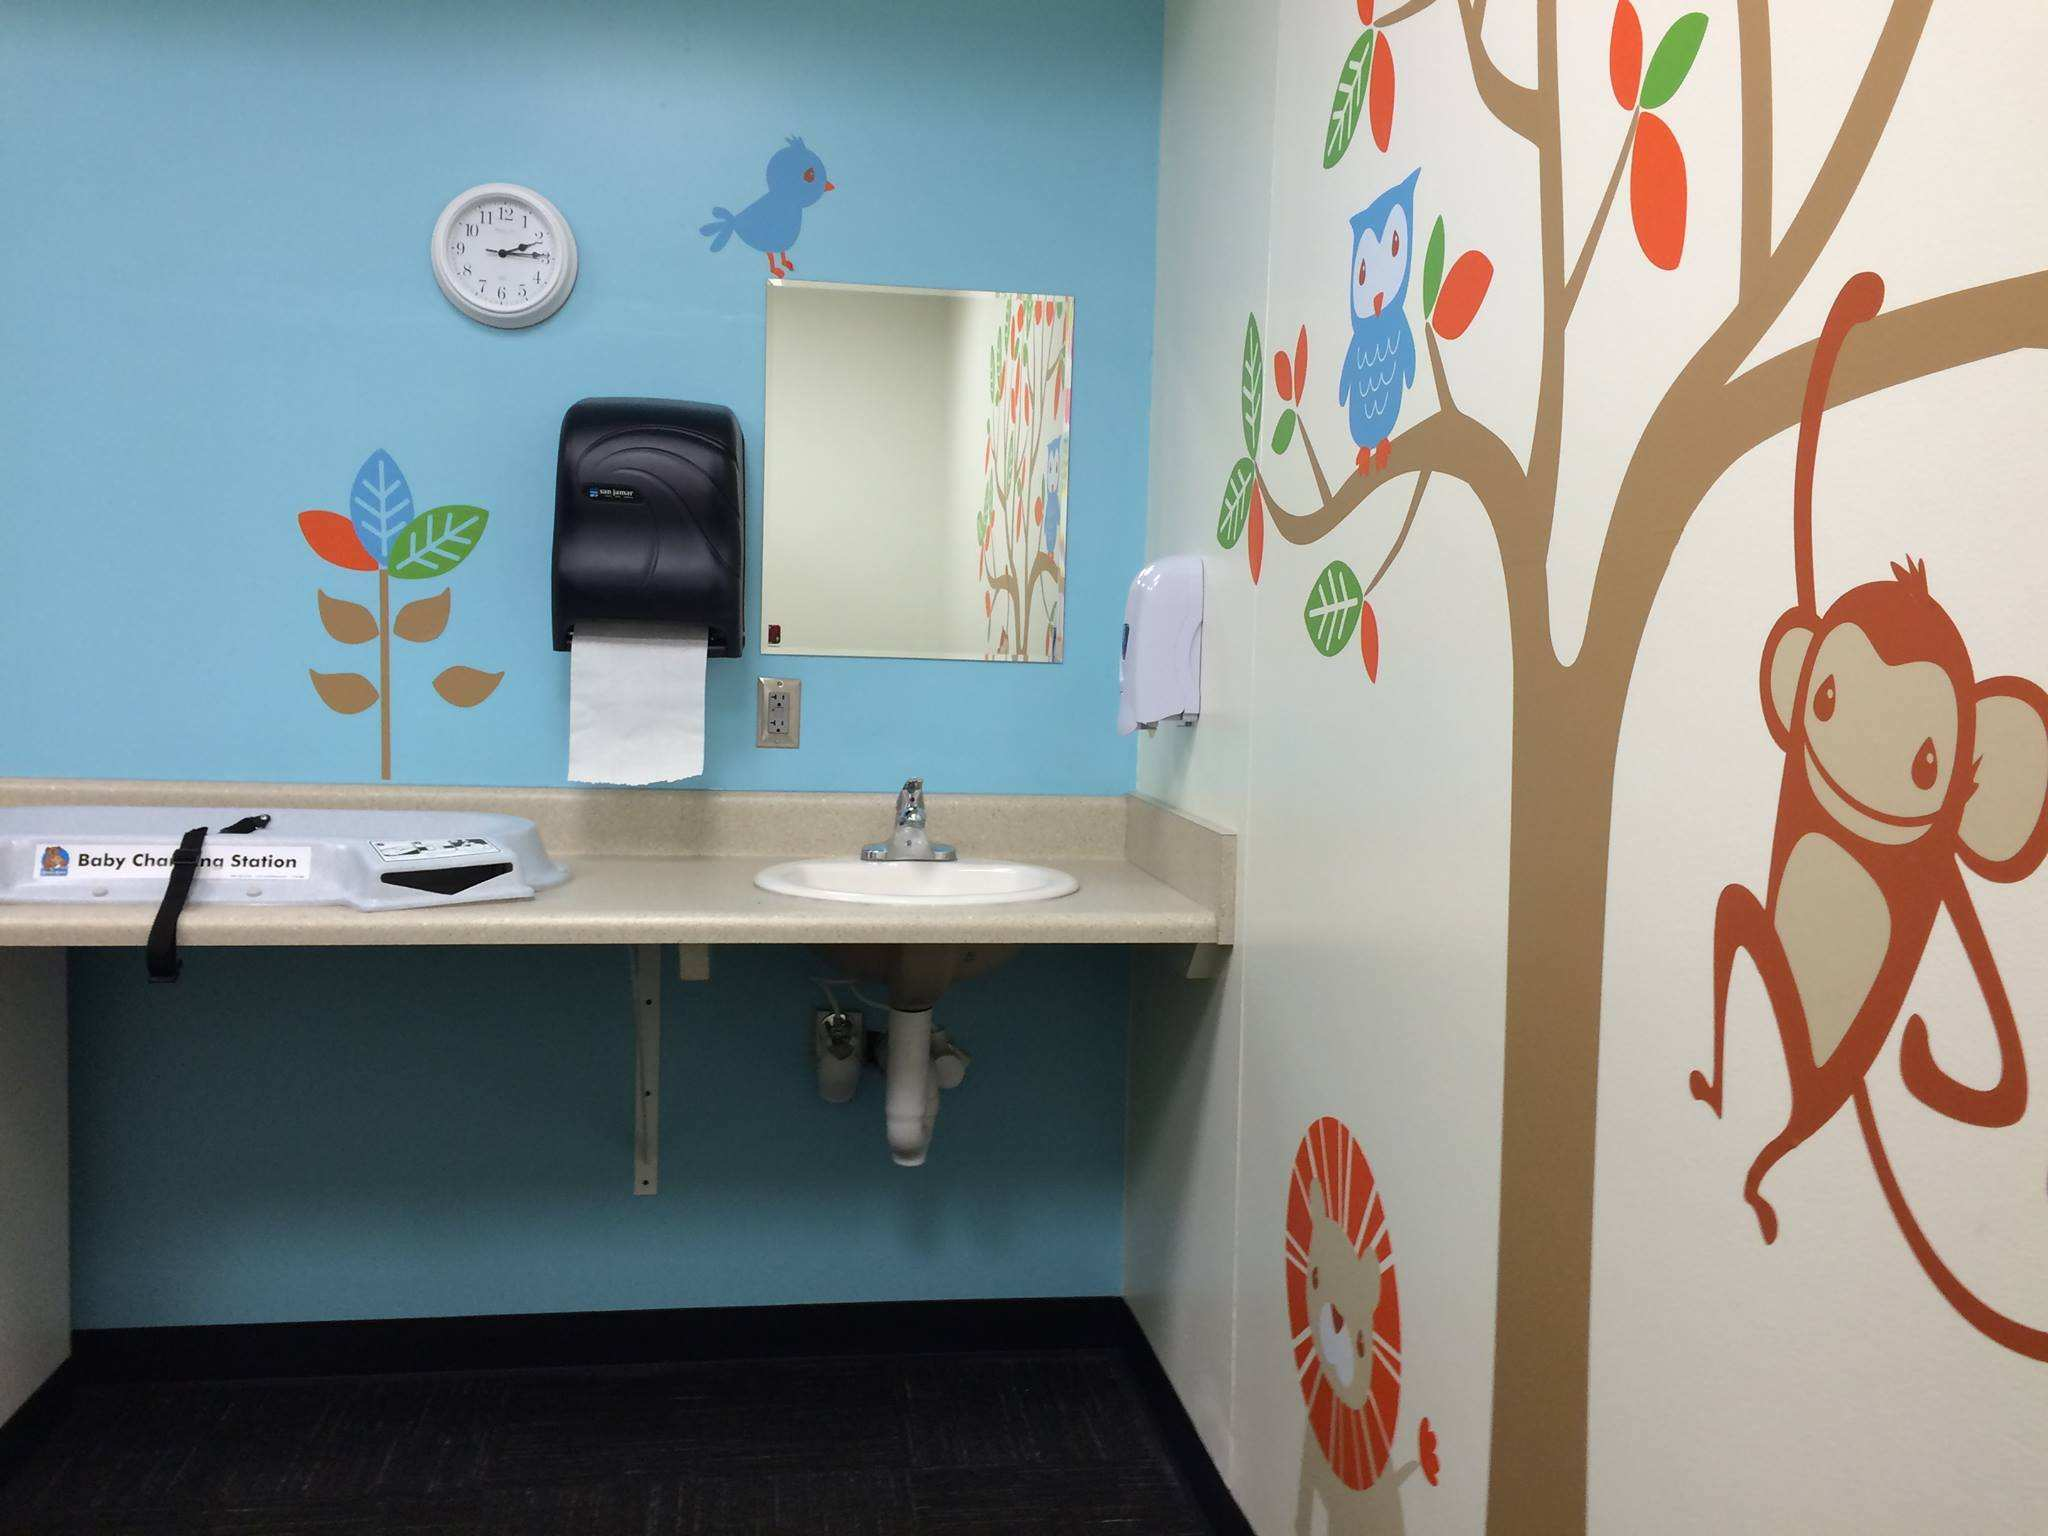 Charlotte international airport nursing mothers room 2